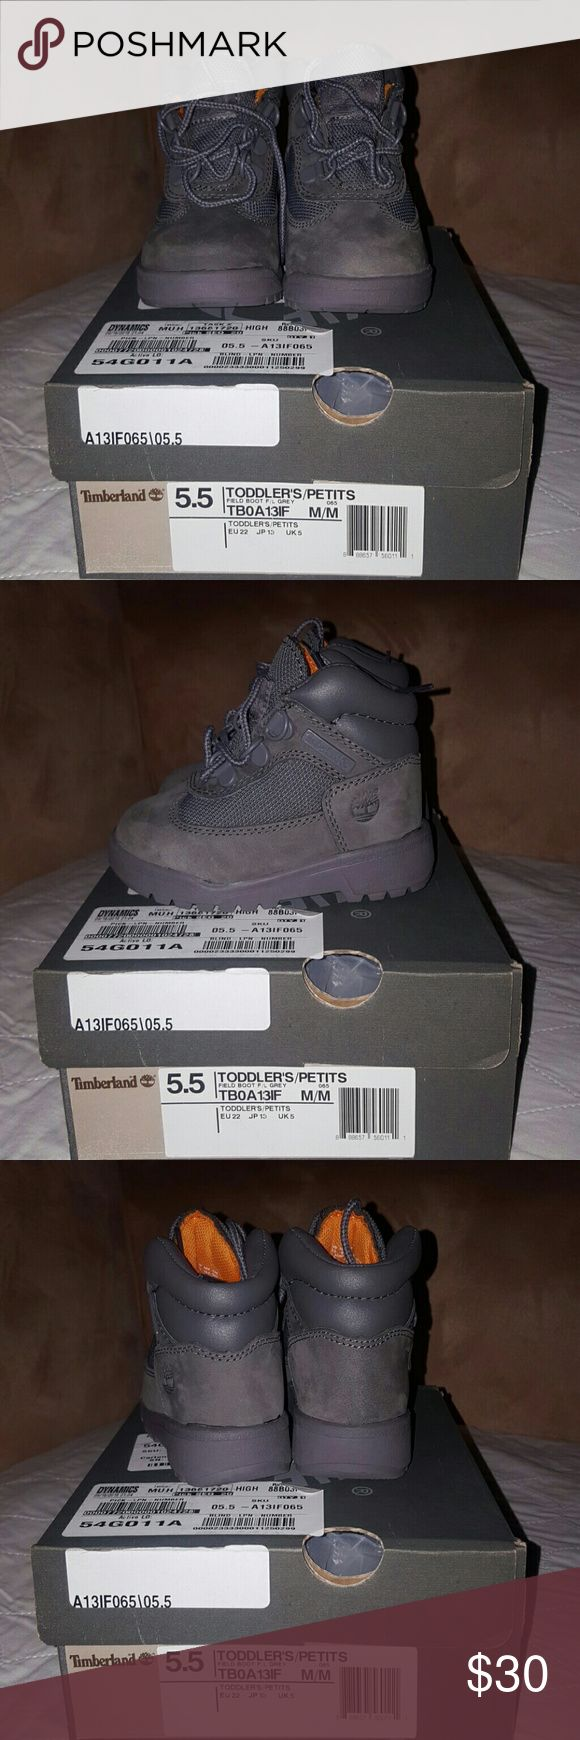 All grey Timberlands boots Timberland boots Timberland Shoes Boots